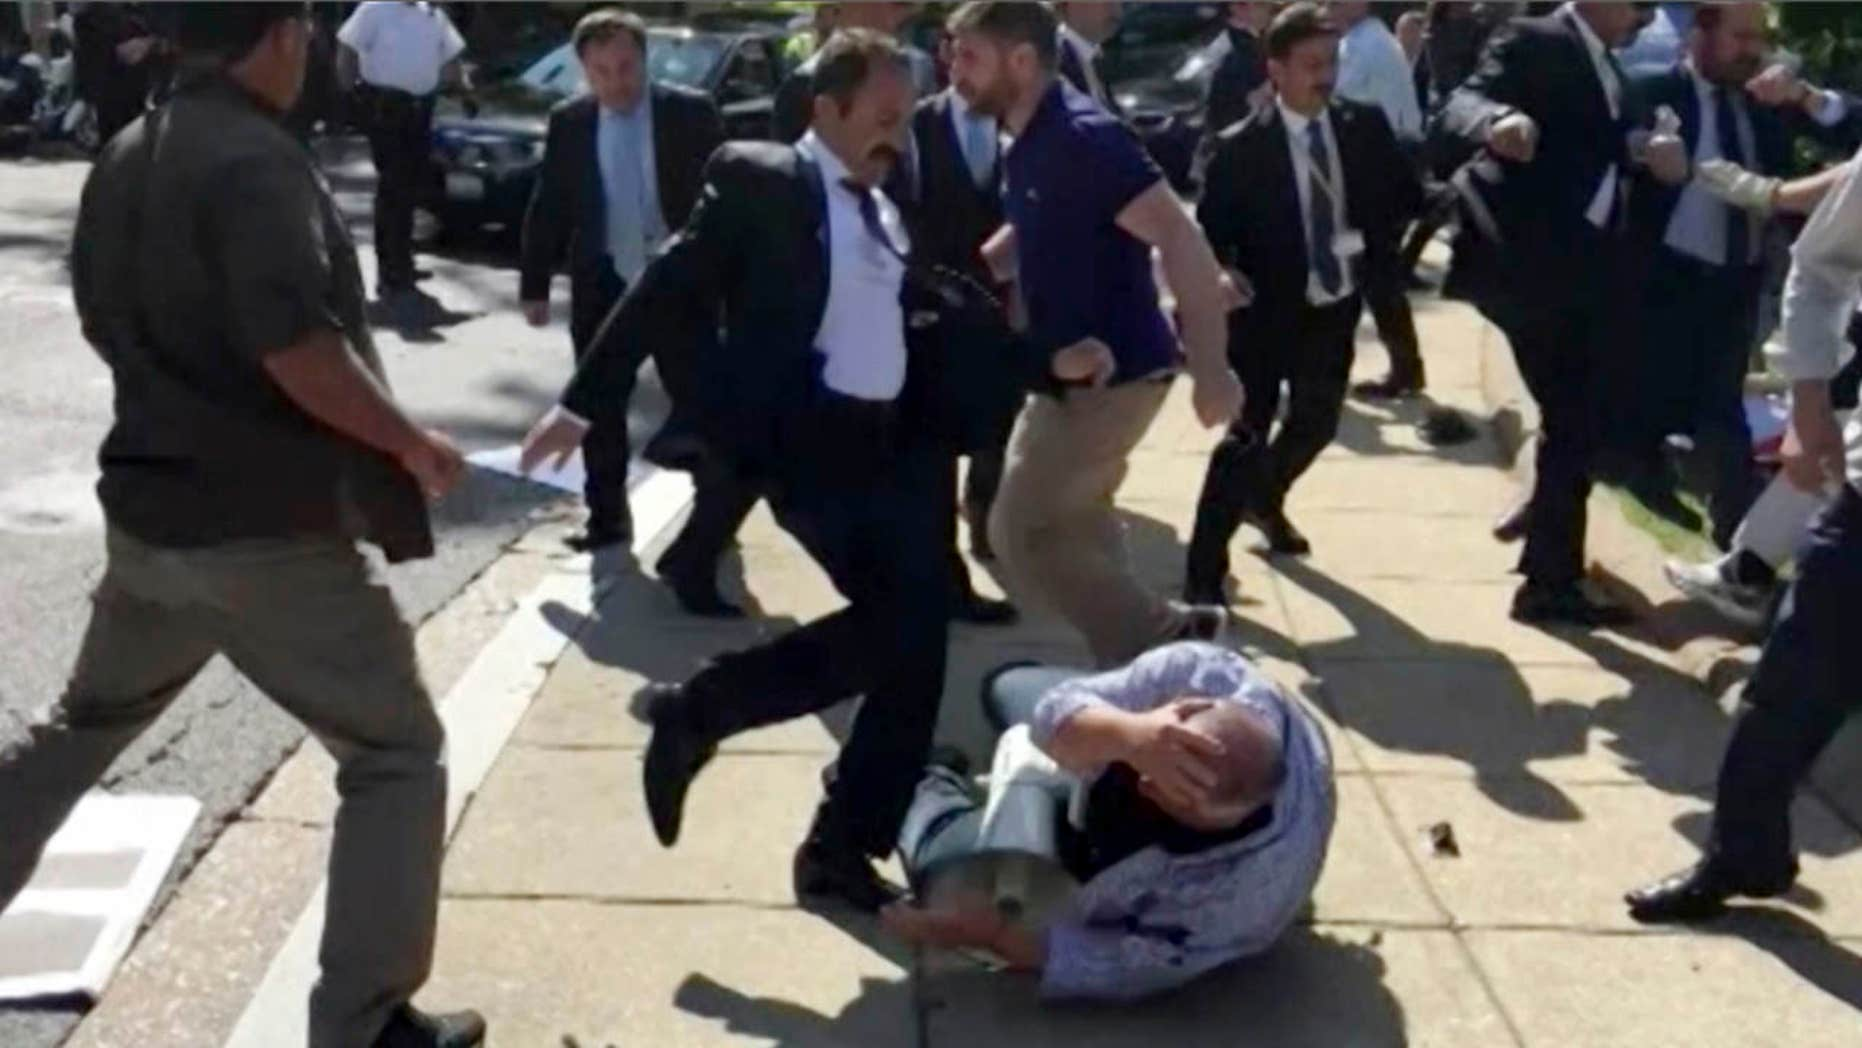 In this frame grab from video provided by Voice of America, members of Turkish President Recep Tayyip Erdogan's security detail are shown violently reacting to peaceful protesters during Erdogan's trip last month to Washington.